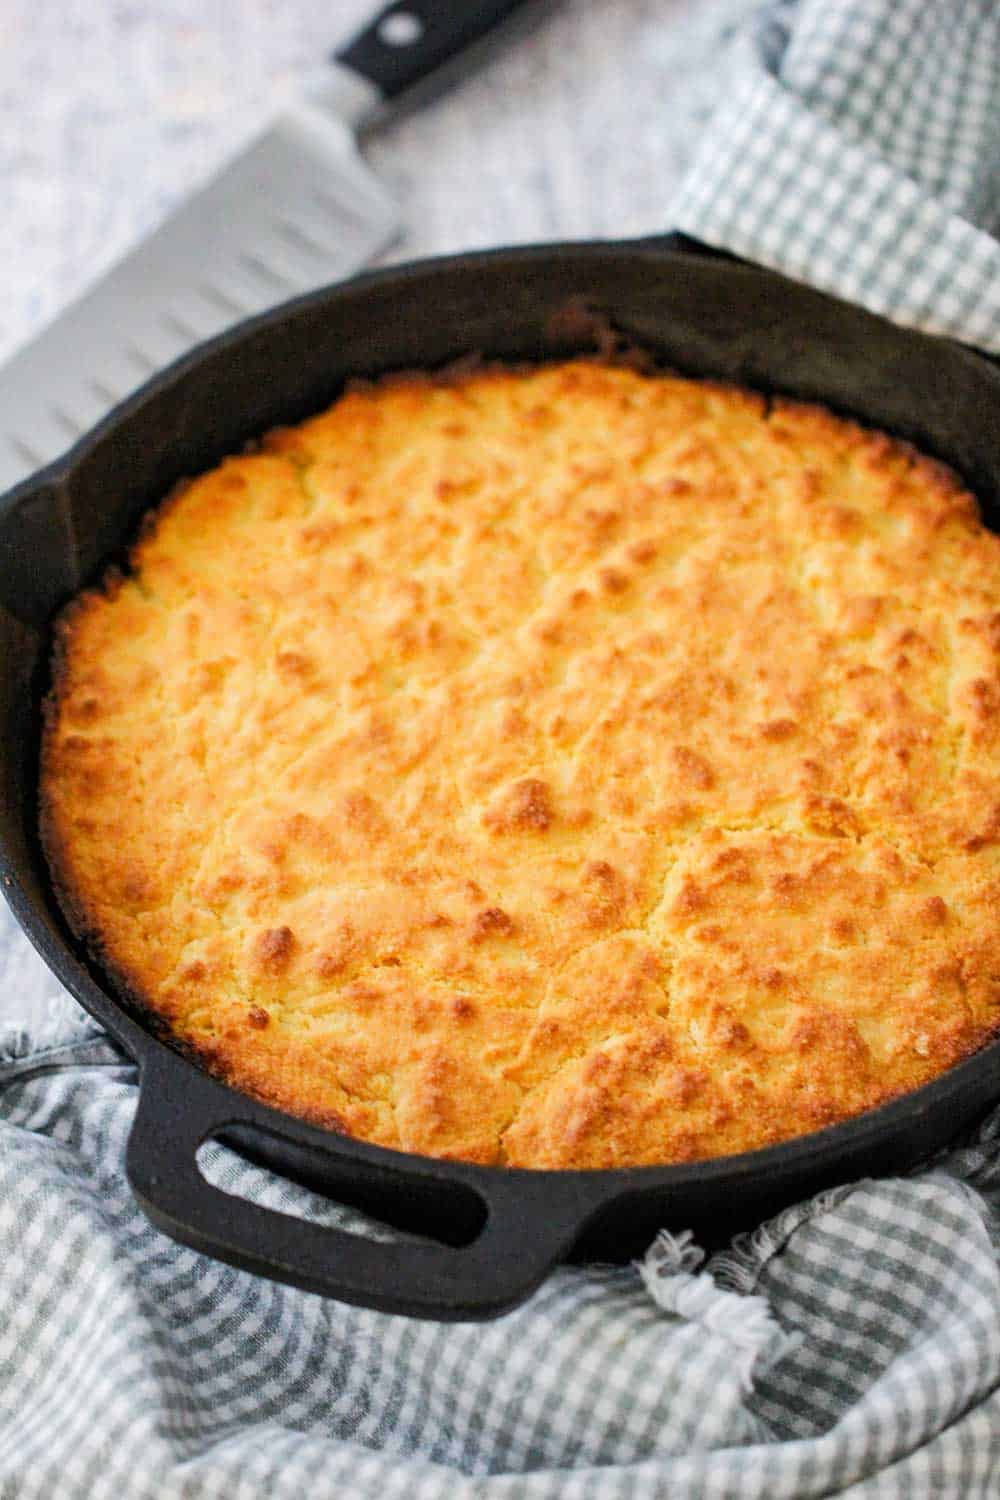 Homemade cornbread in a cast iron skillet with two patterned napkins nearby.